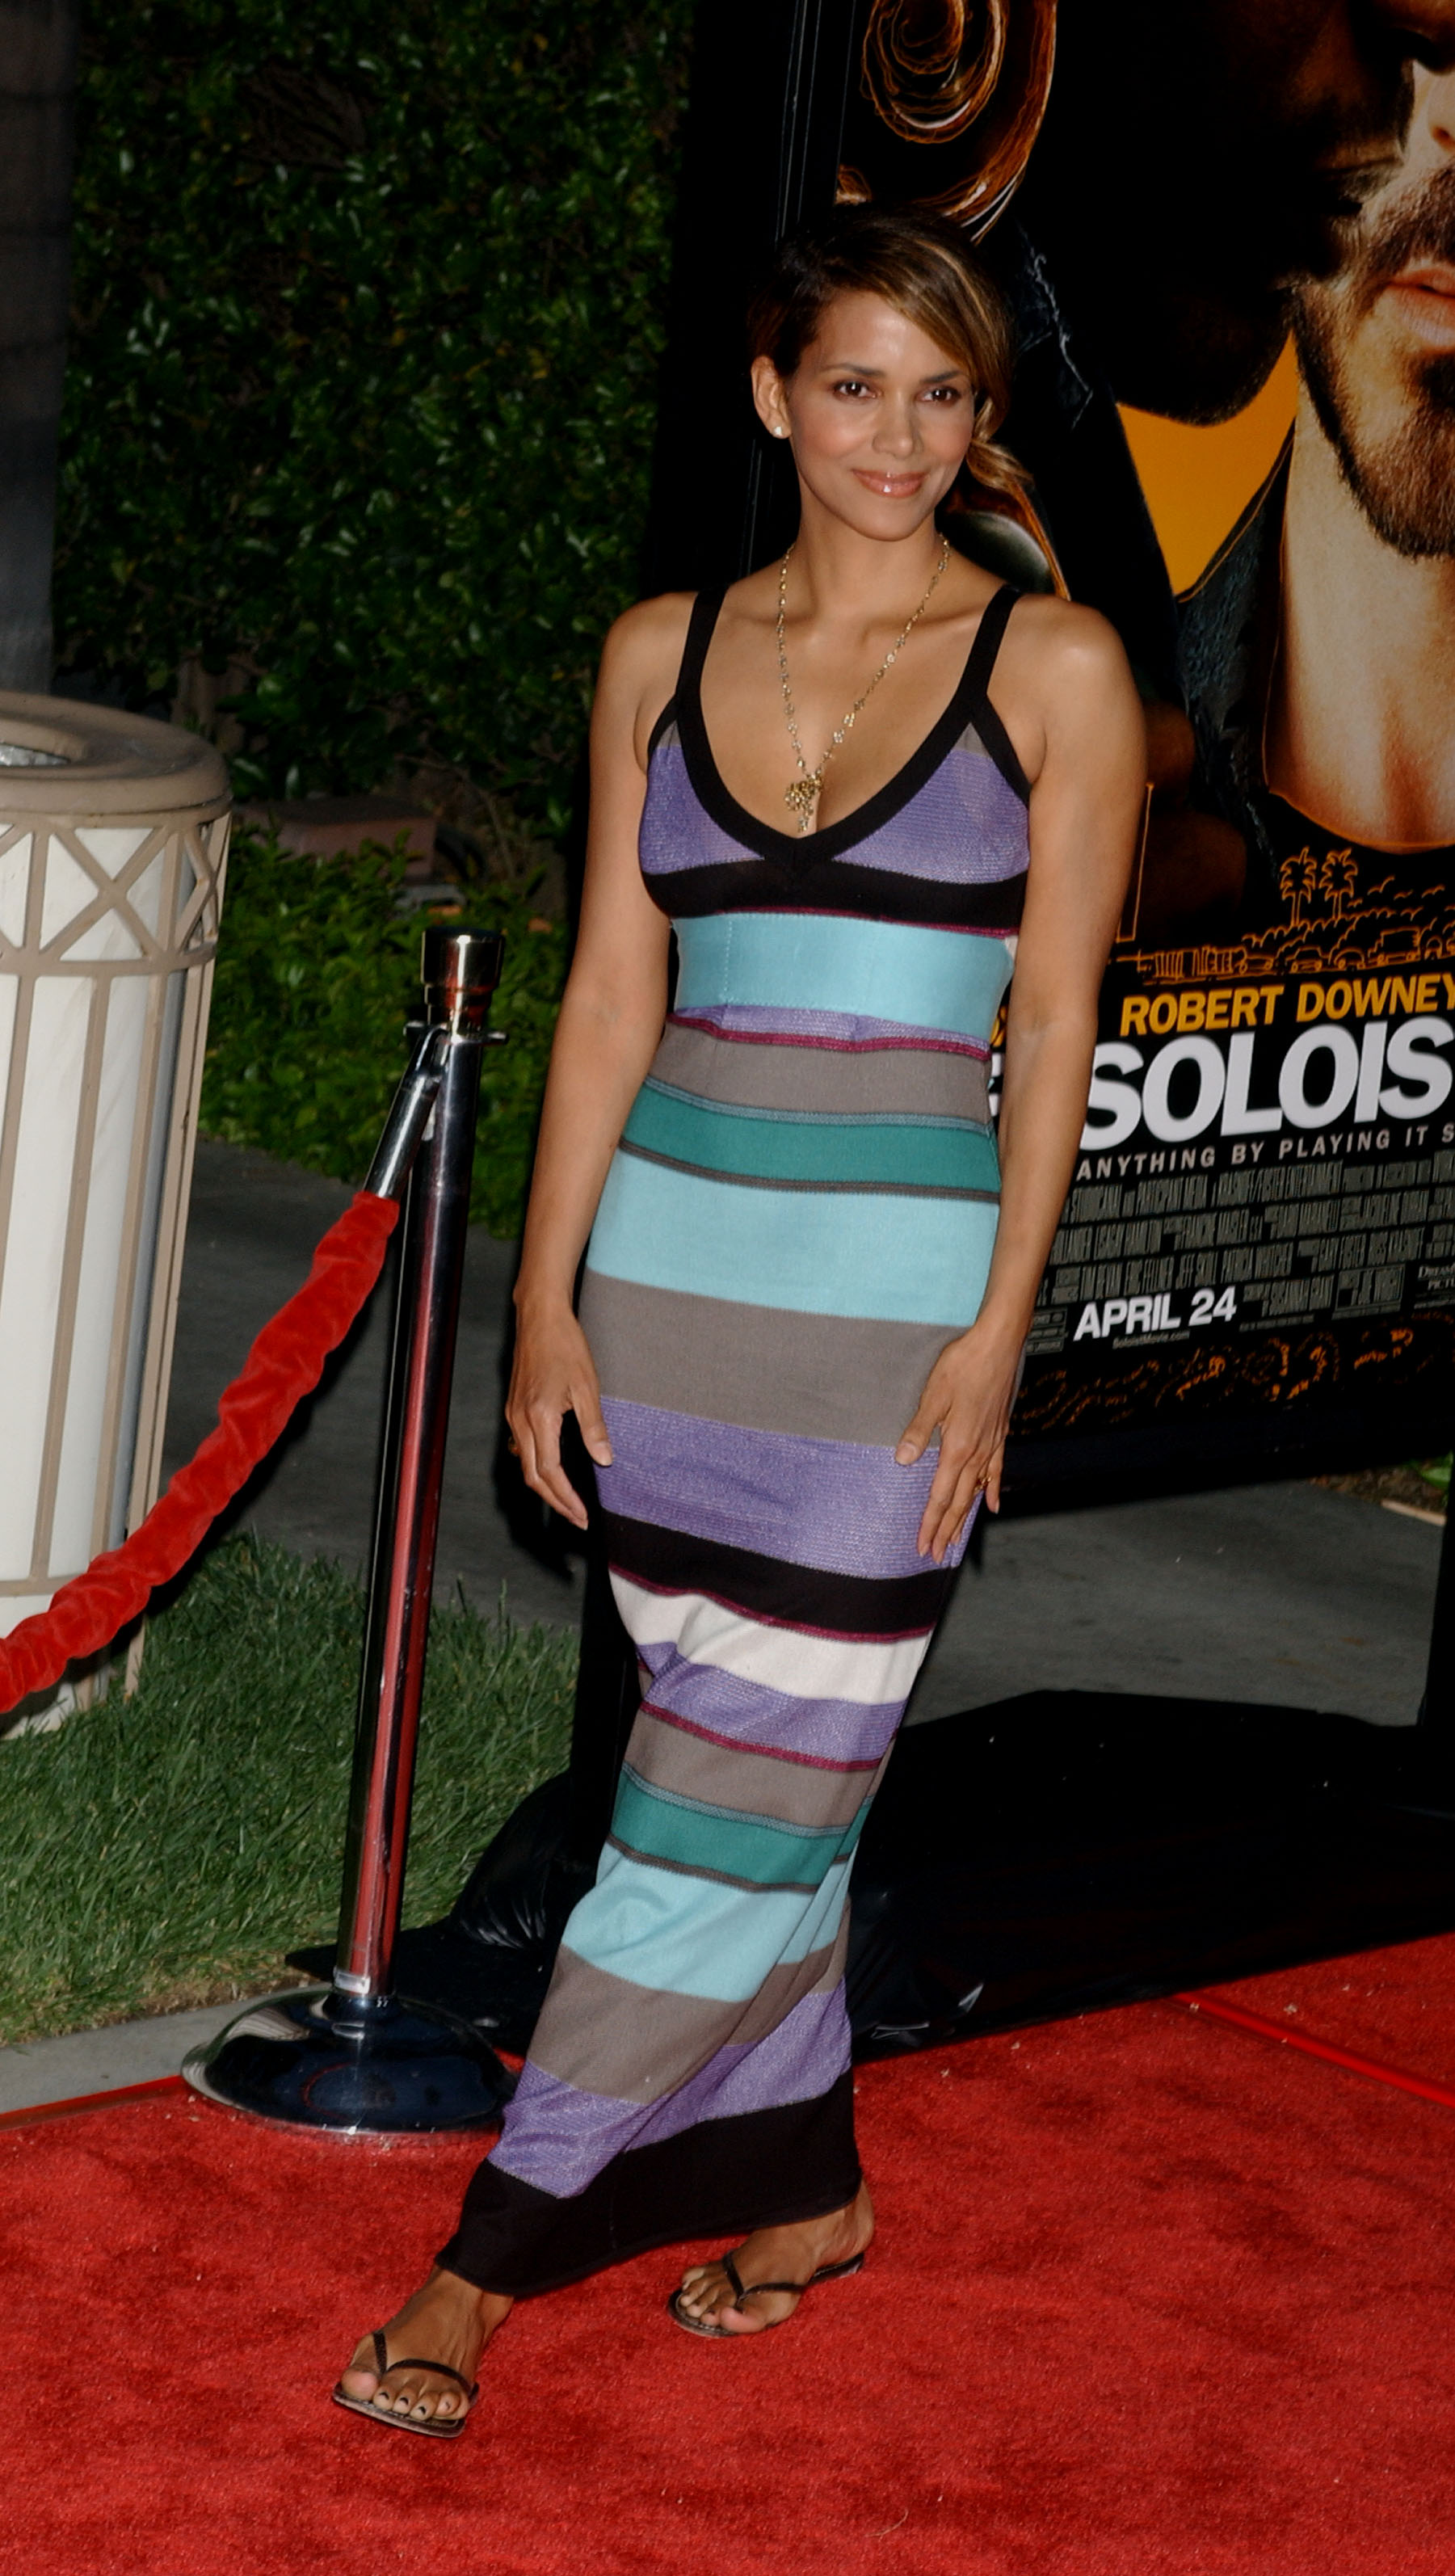 68784_Halle_Berry_The_Soloist_premiere_in_Los_Angeles_50_122_491lo.jpg